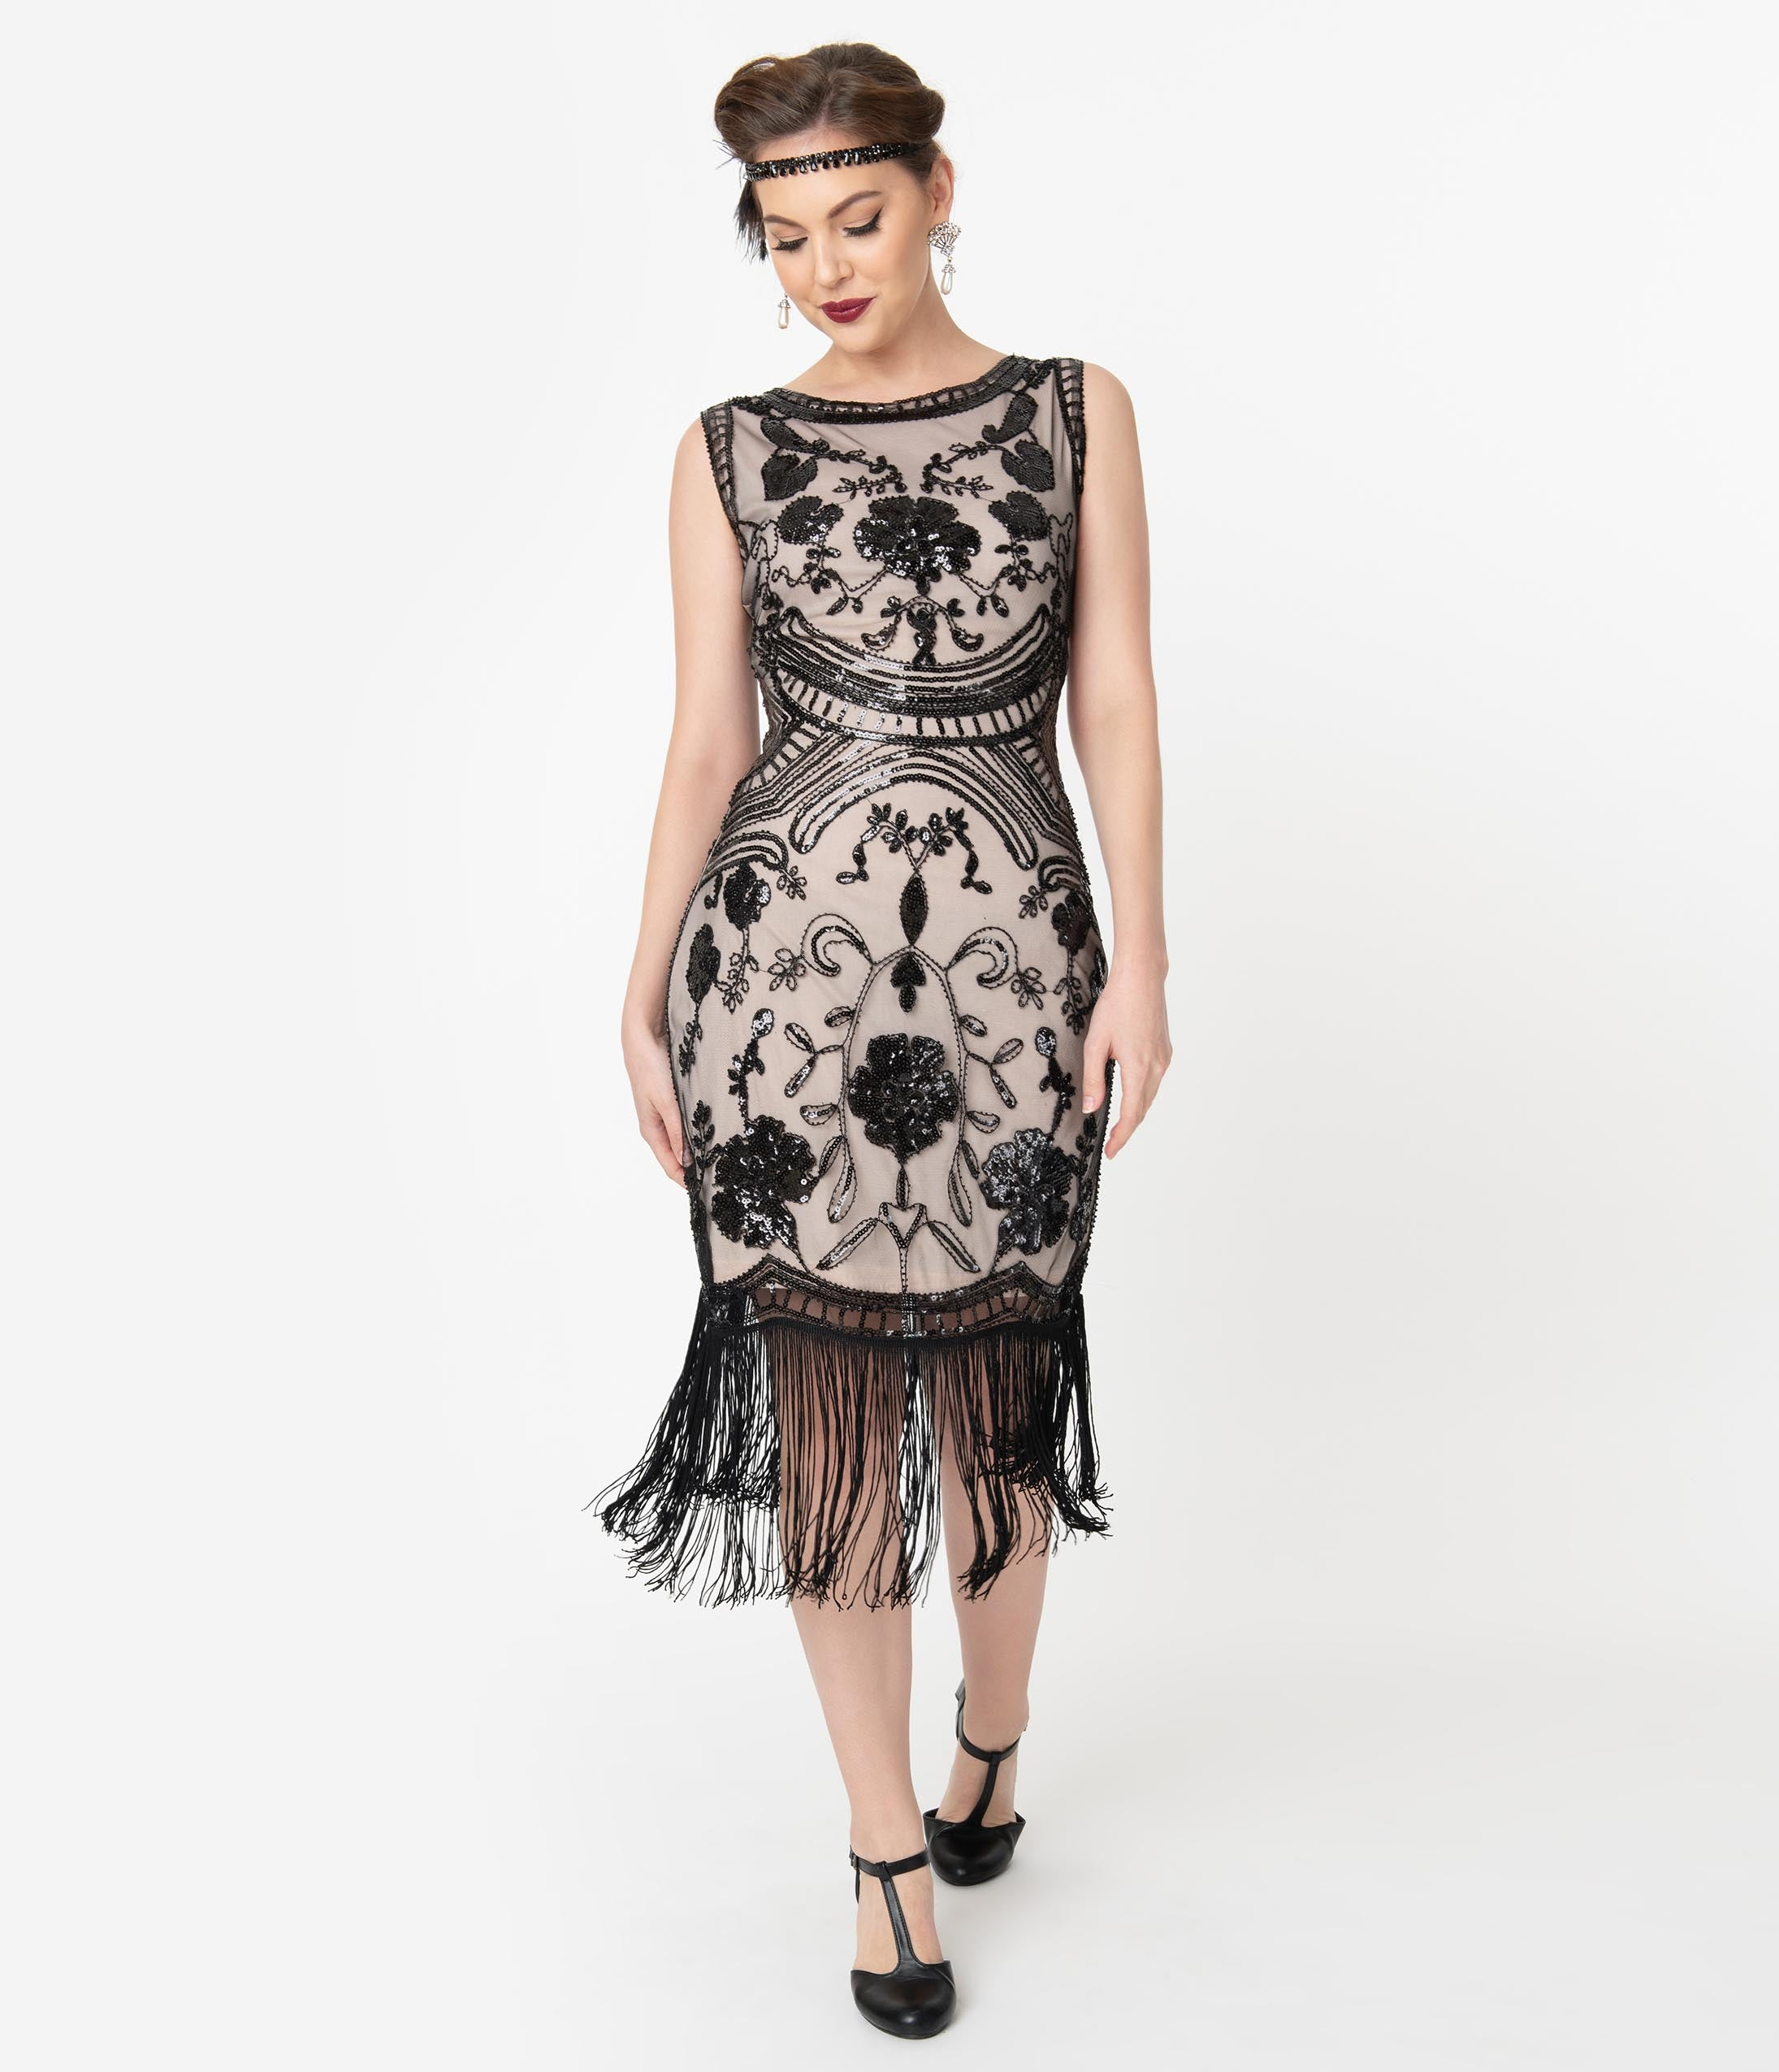 Best 1920s Prom Dresses – Great Gatsby Style Gowns Unique Vintage 1920S Style Blush Pink  Black Sequin Isabeau Cocktail Dress $98.00 AT vintagedancer.com